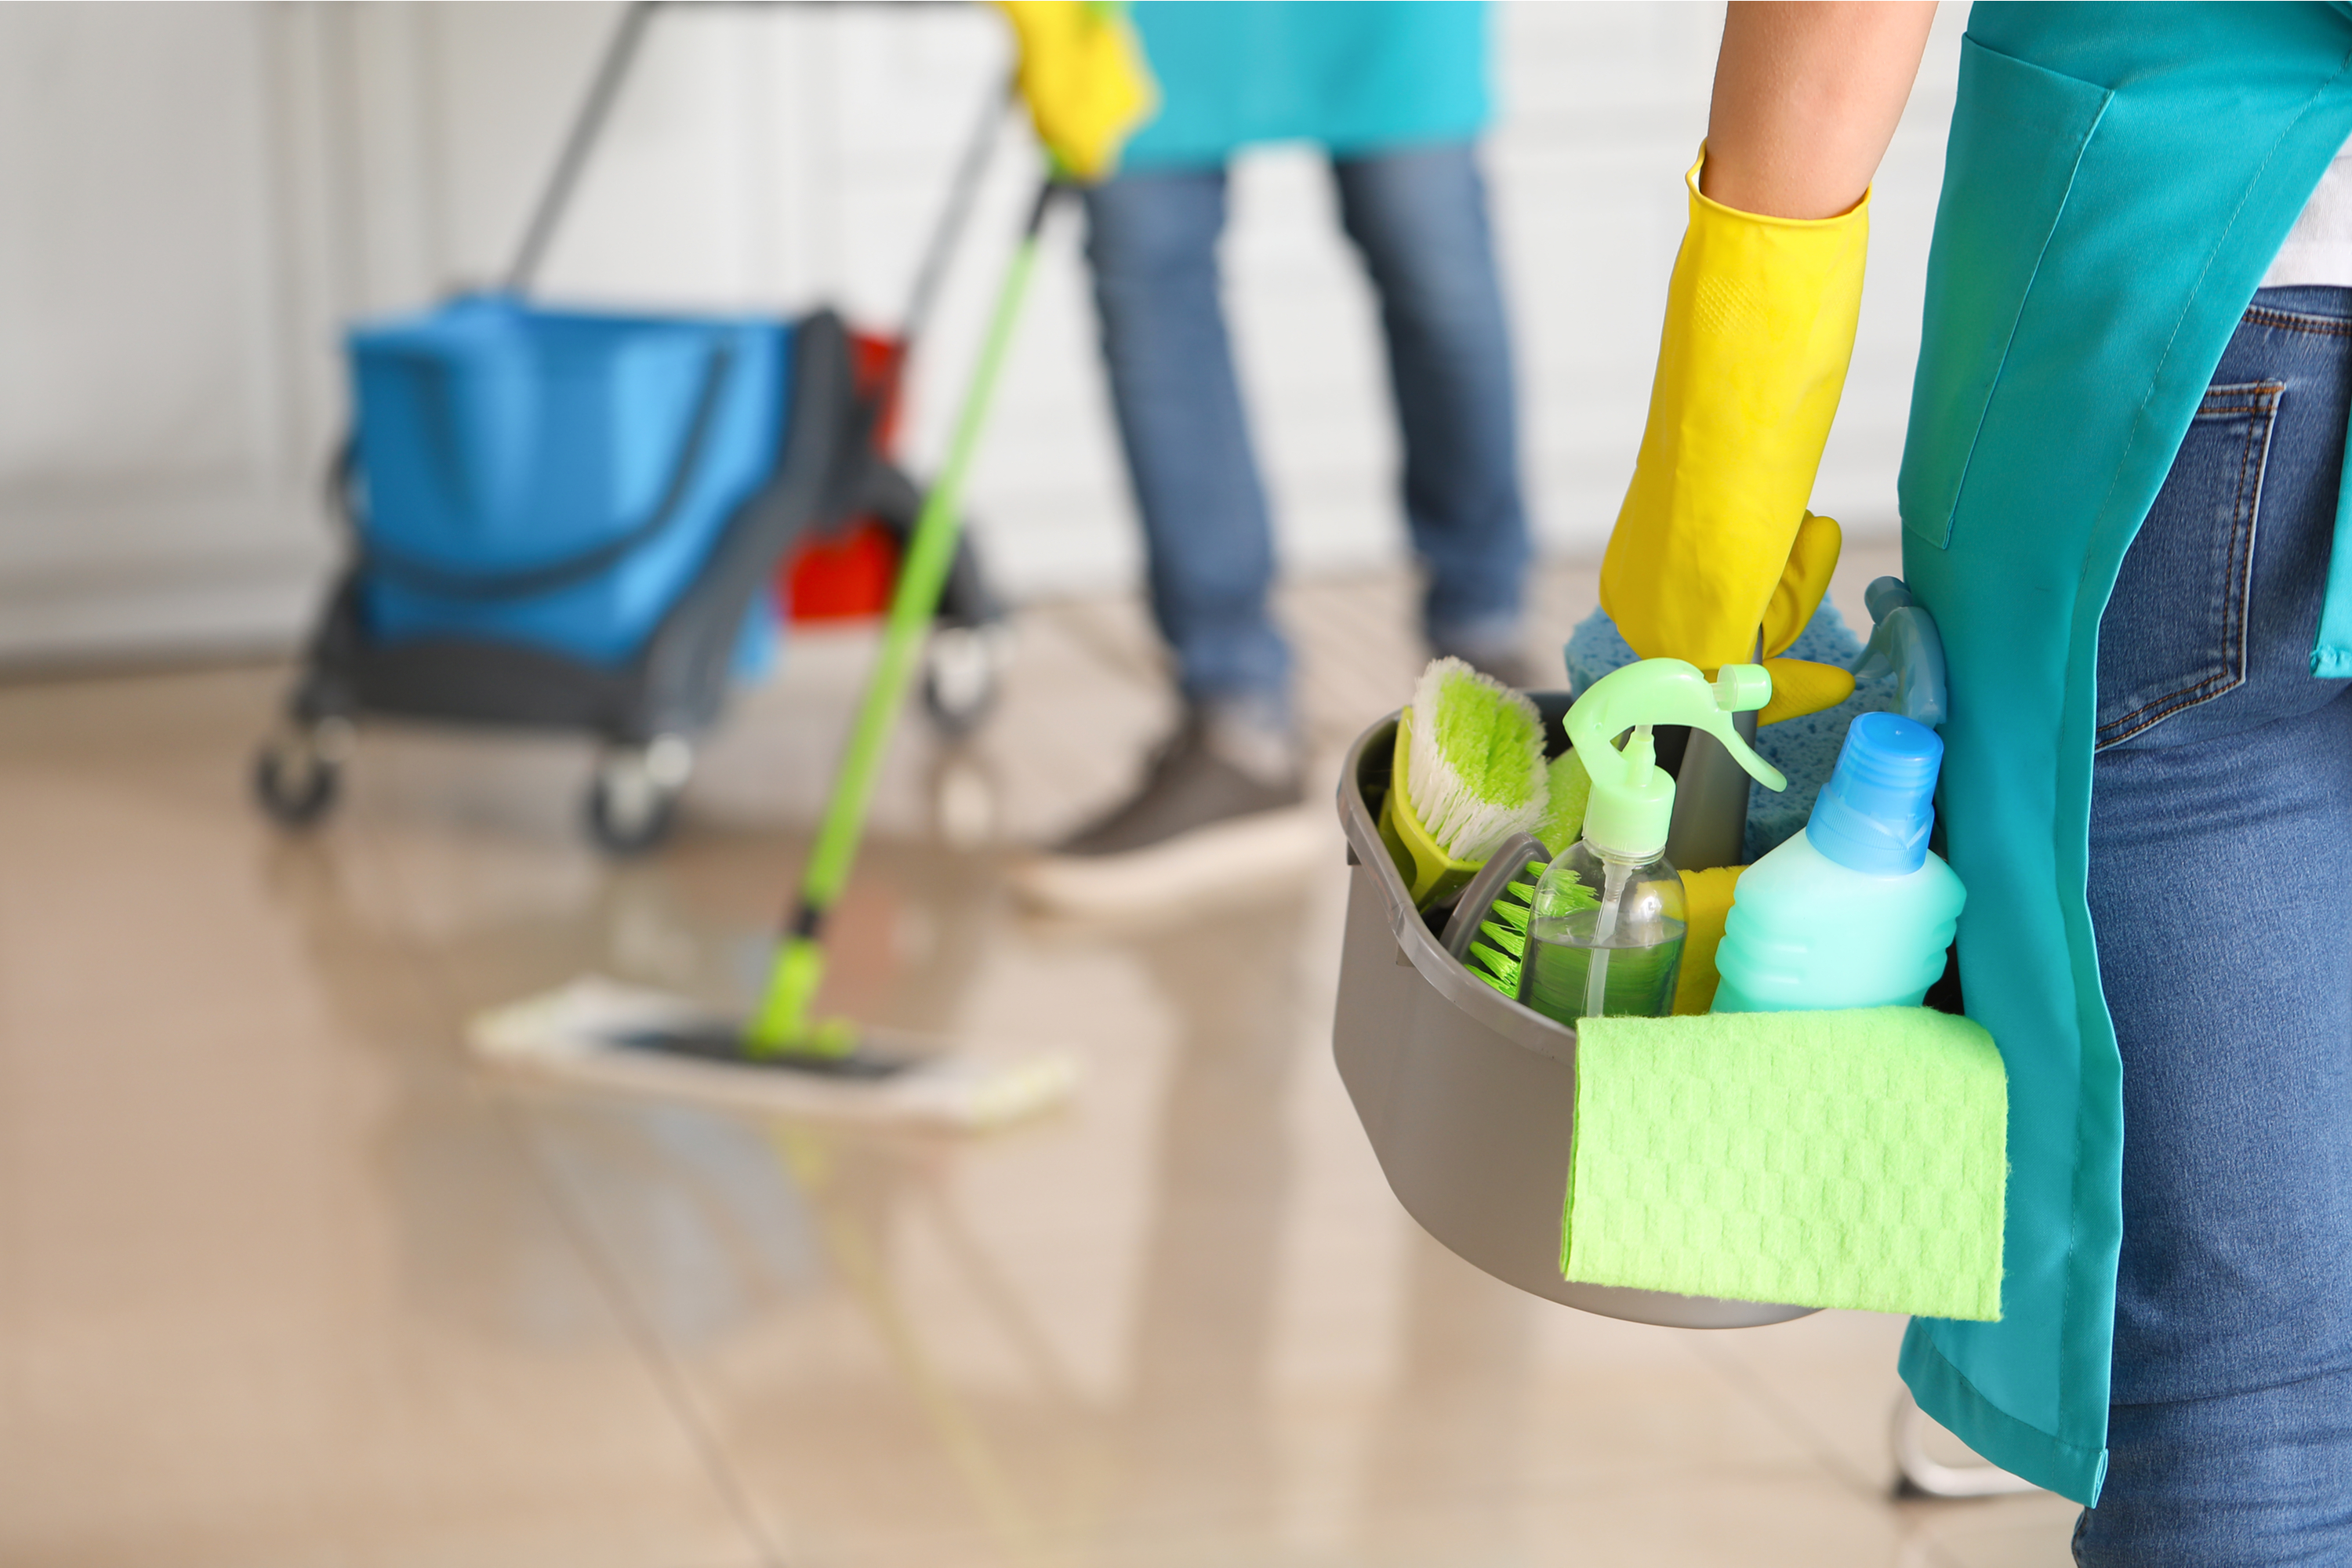 If you want to keep your home squeaky clean, you need to implement these cleaning habits to your life. You'll be amazed at the difference these cleaning habits make on a daily bases.